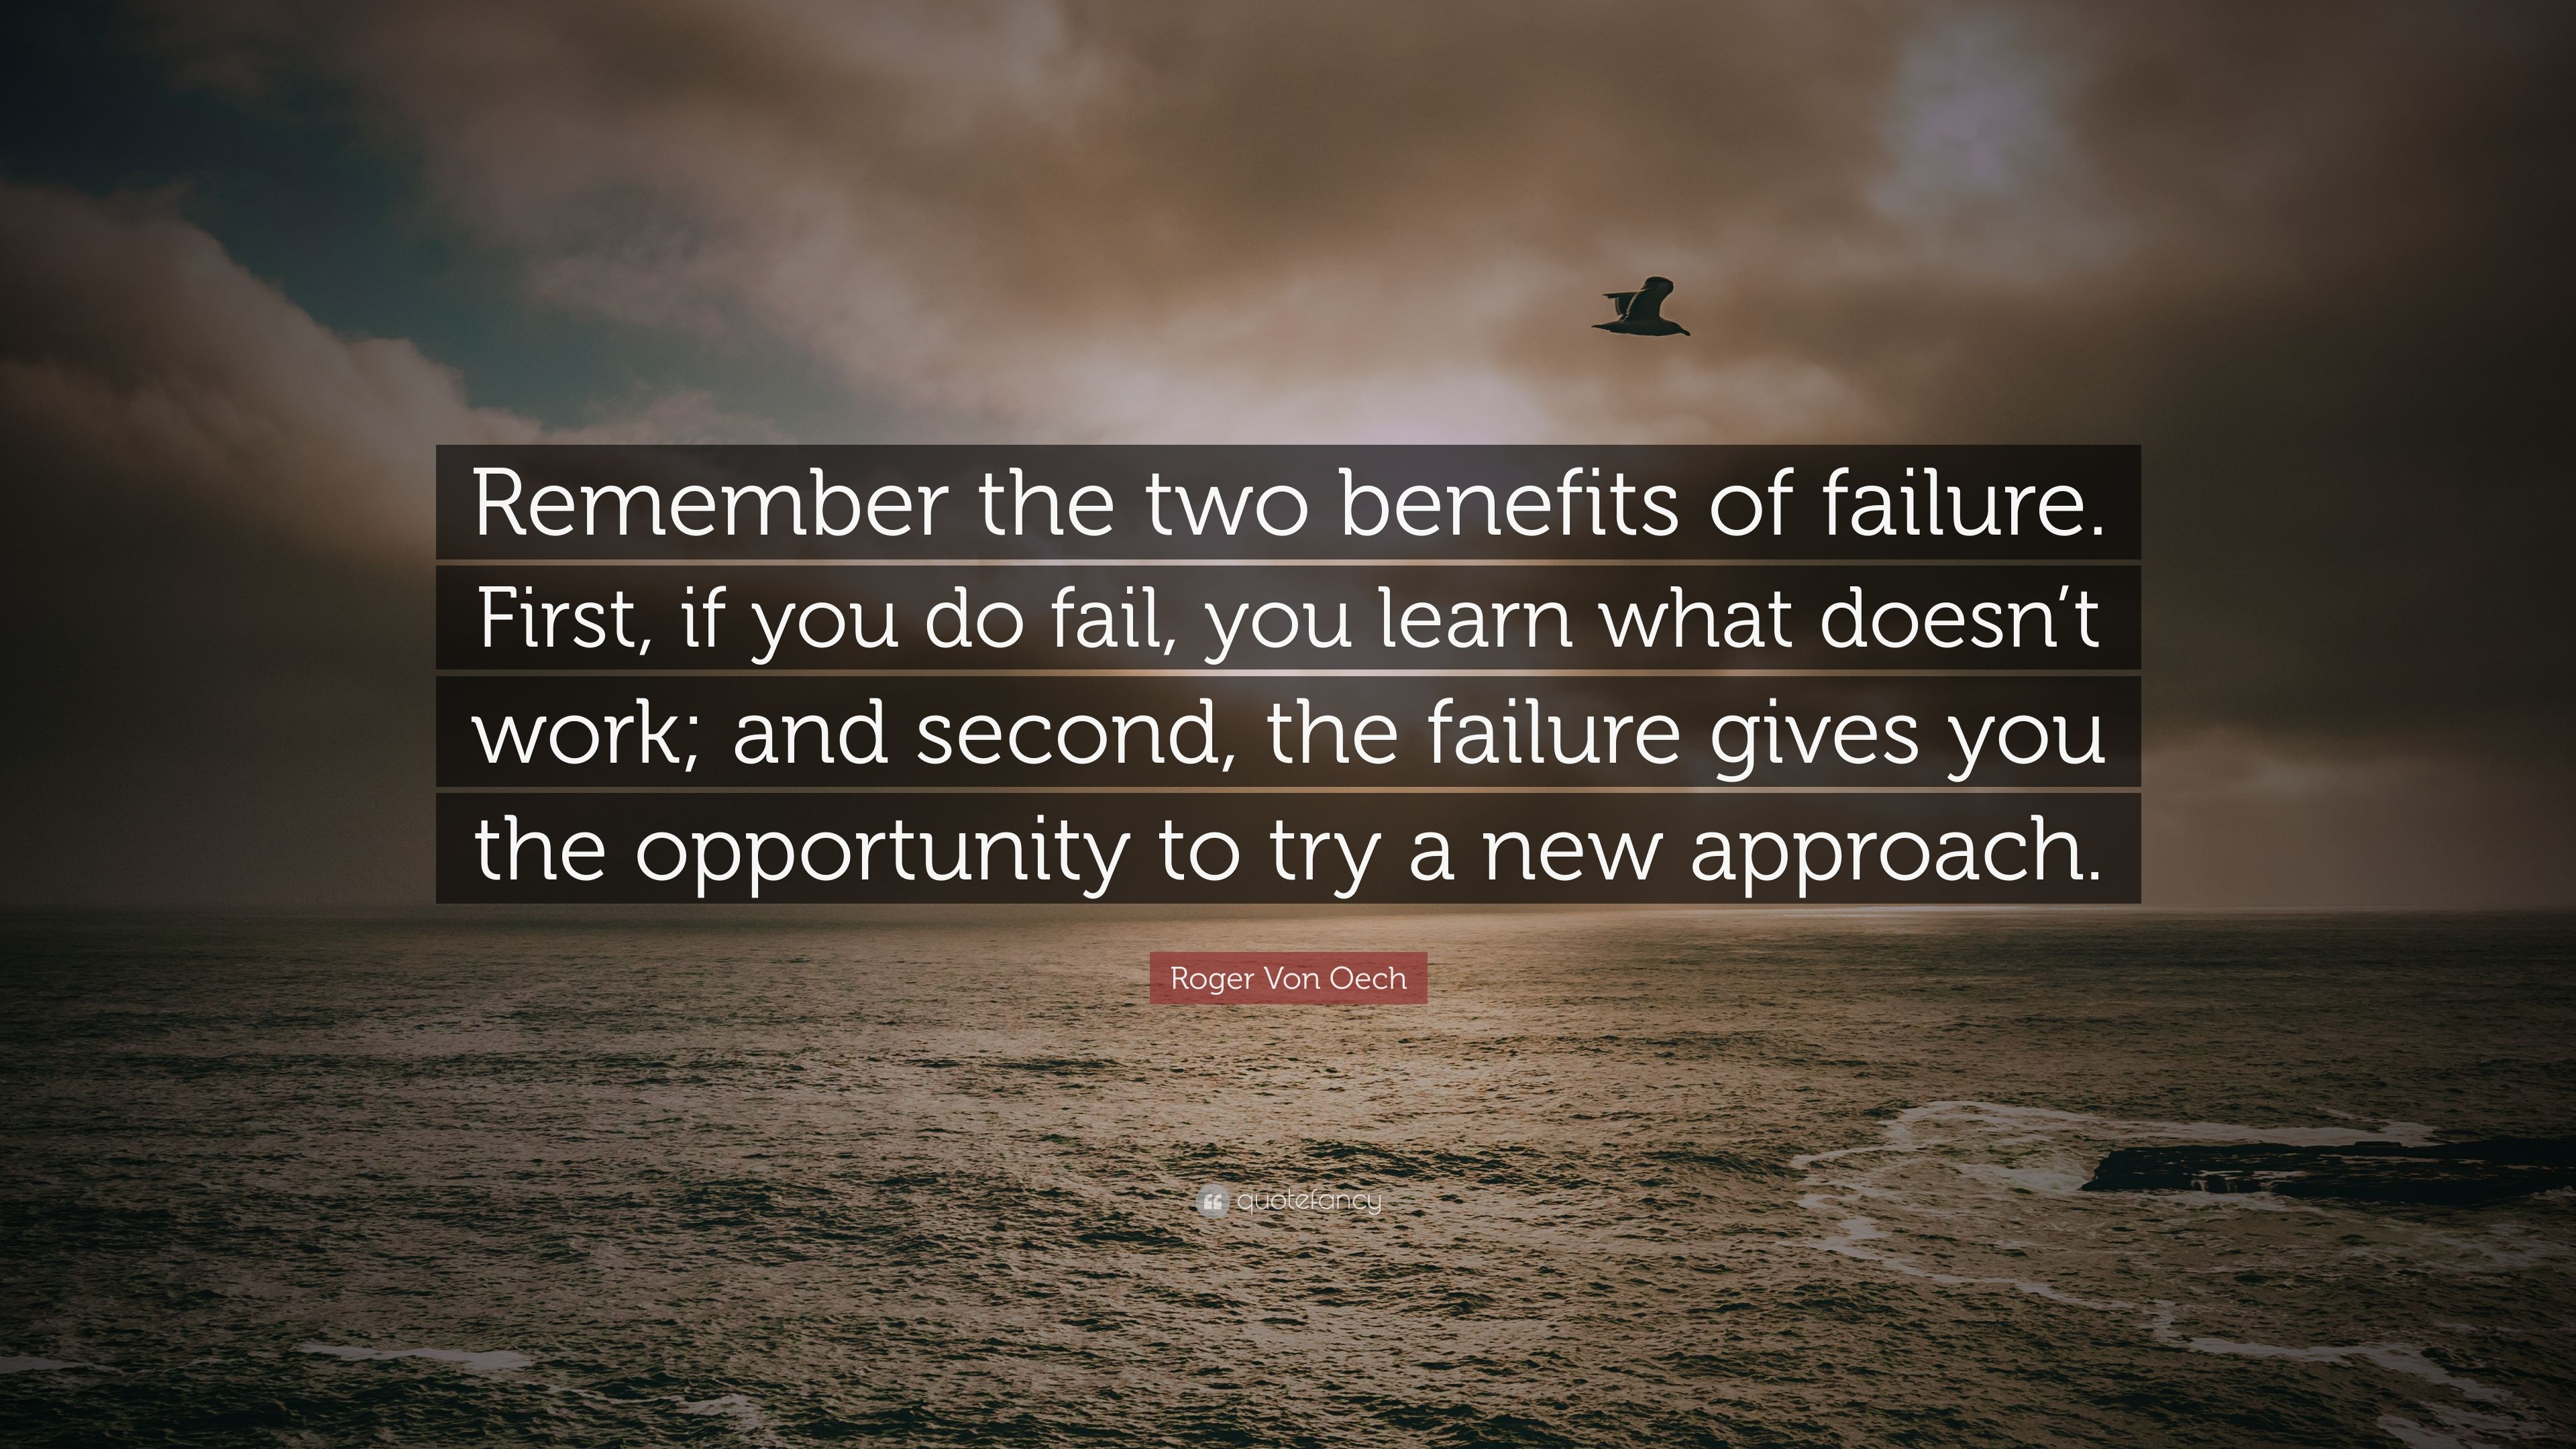 benefits of a failure Failure is inevitable in life, but how we overcome challenges and use them to our  advantage is what matters.